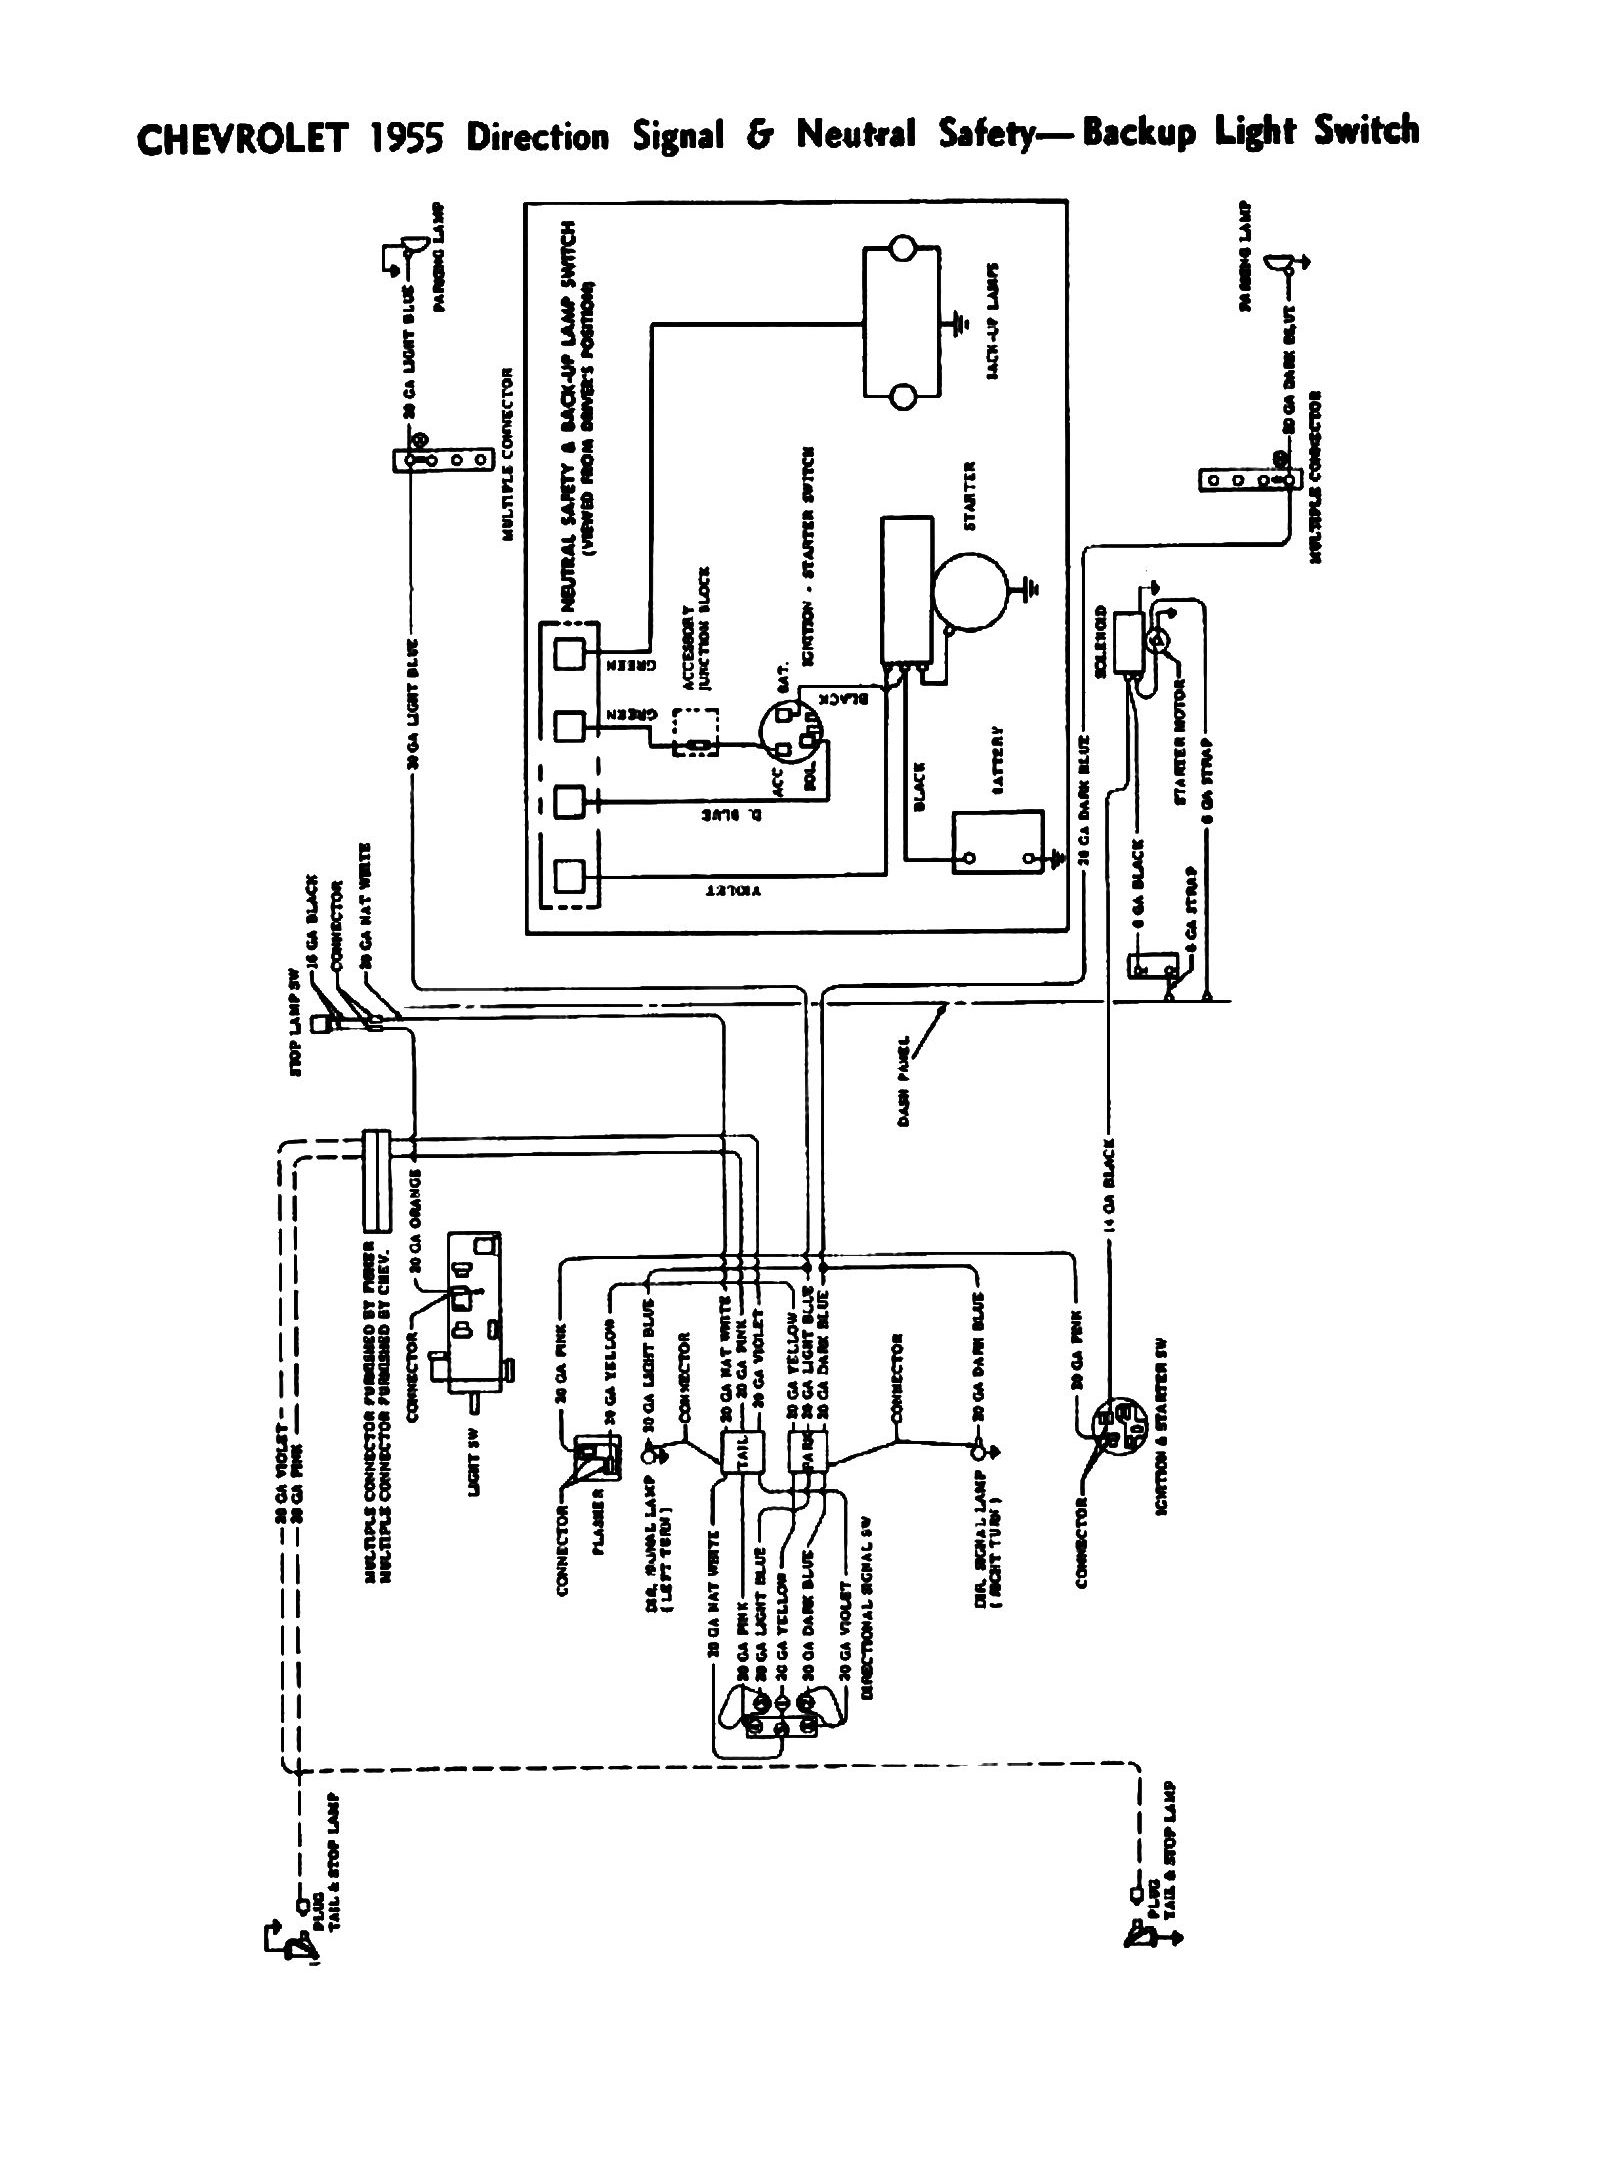 55 Chevy Turn Signal Wiring on 1955 plymouth wiring diagram